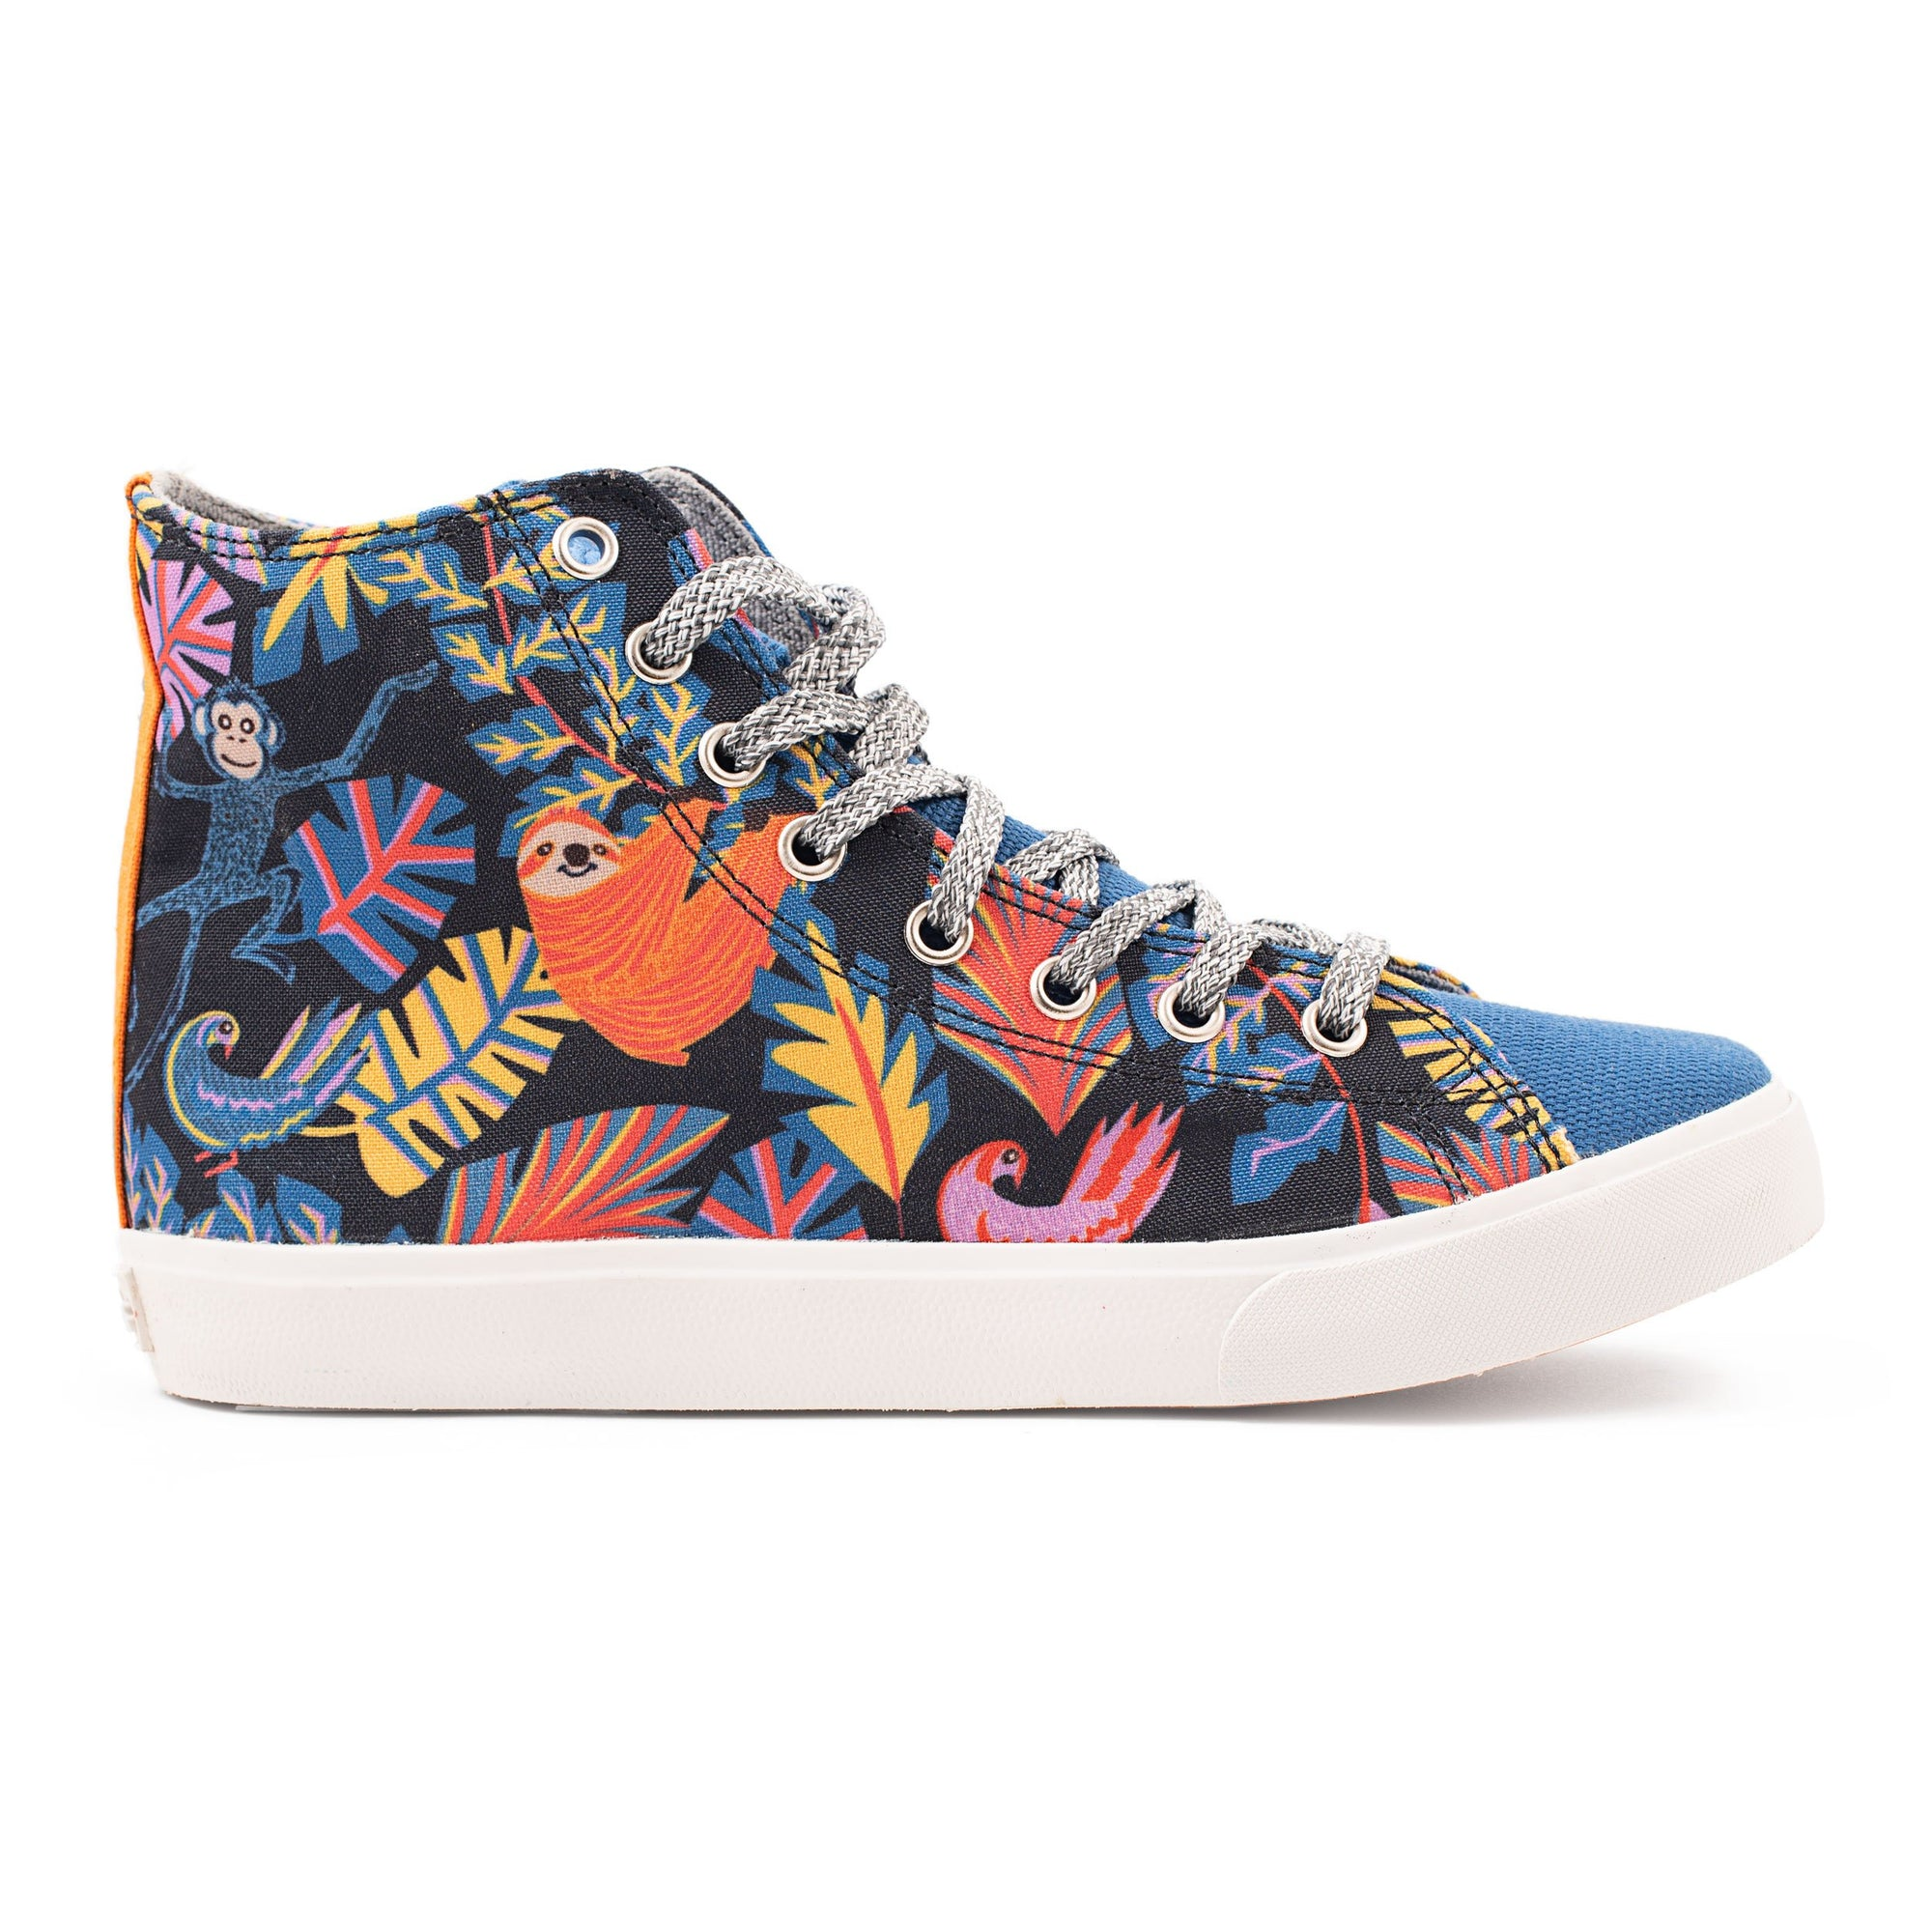 Quetzal High Top